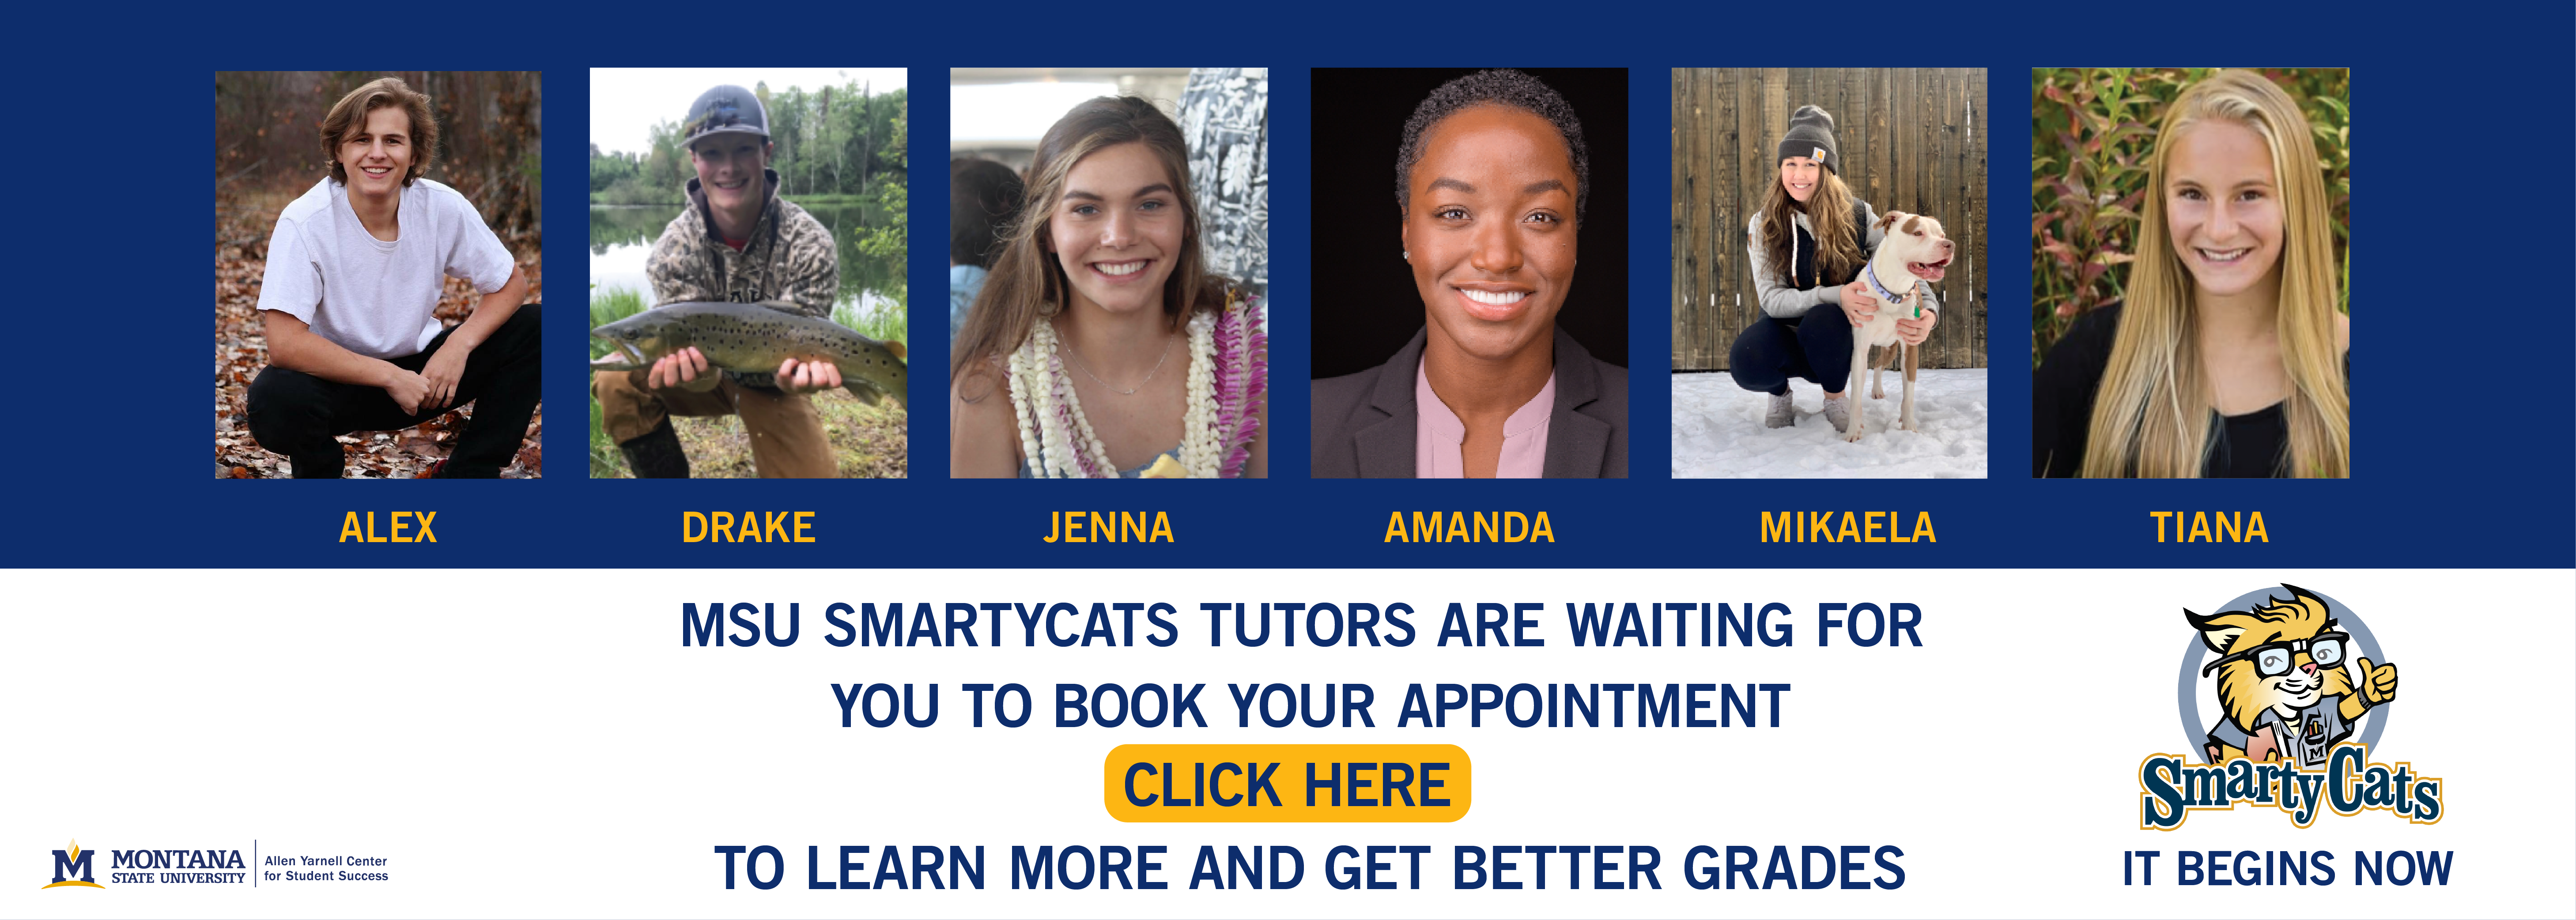 MSU Smartycats tutors are waiting for you to book your appointment.